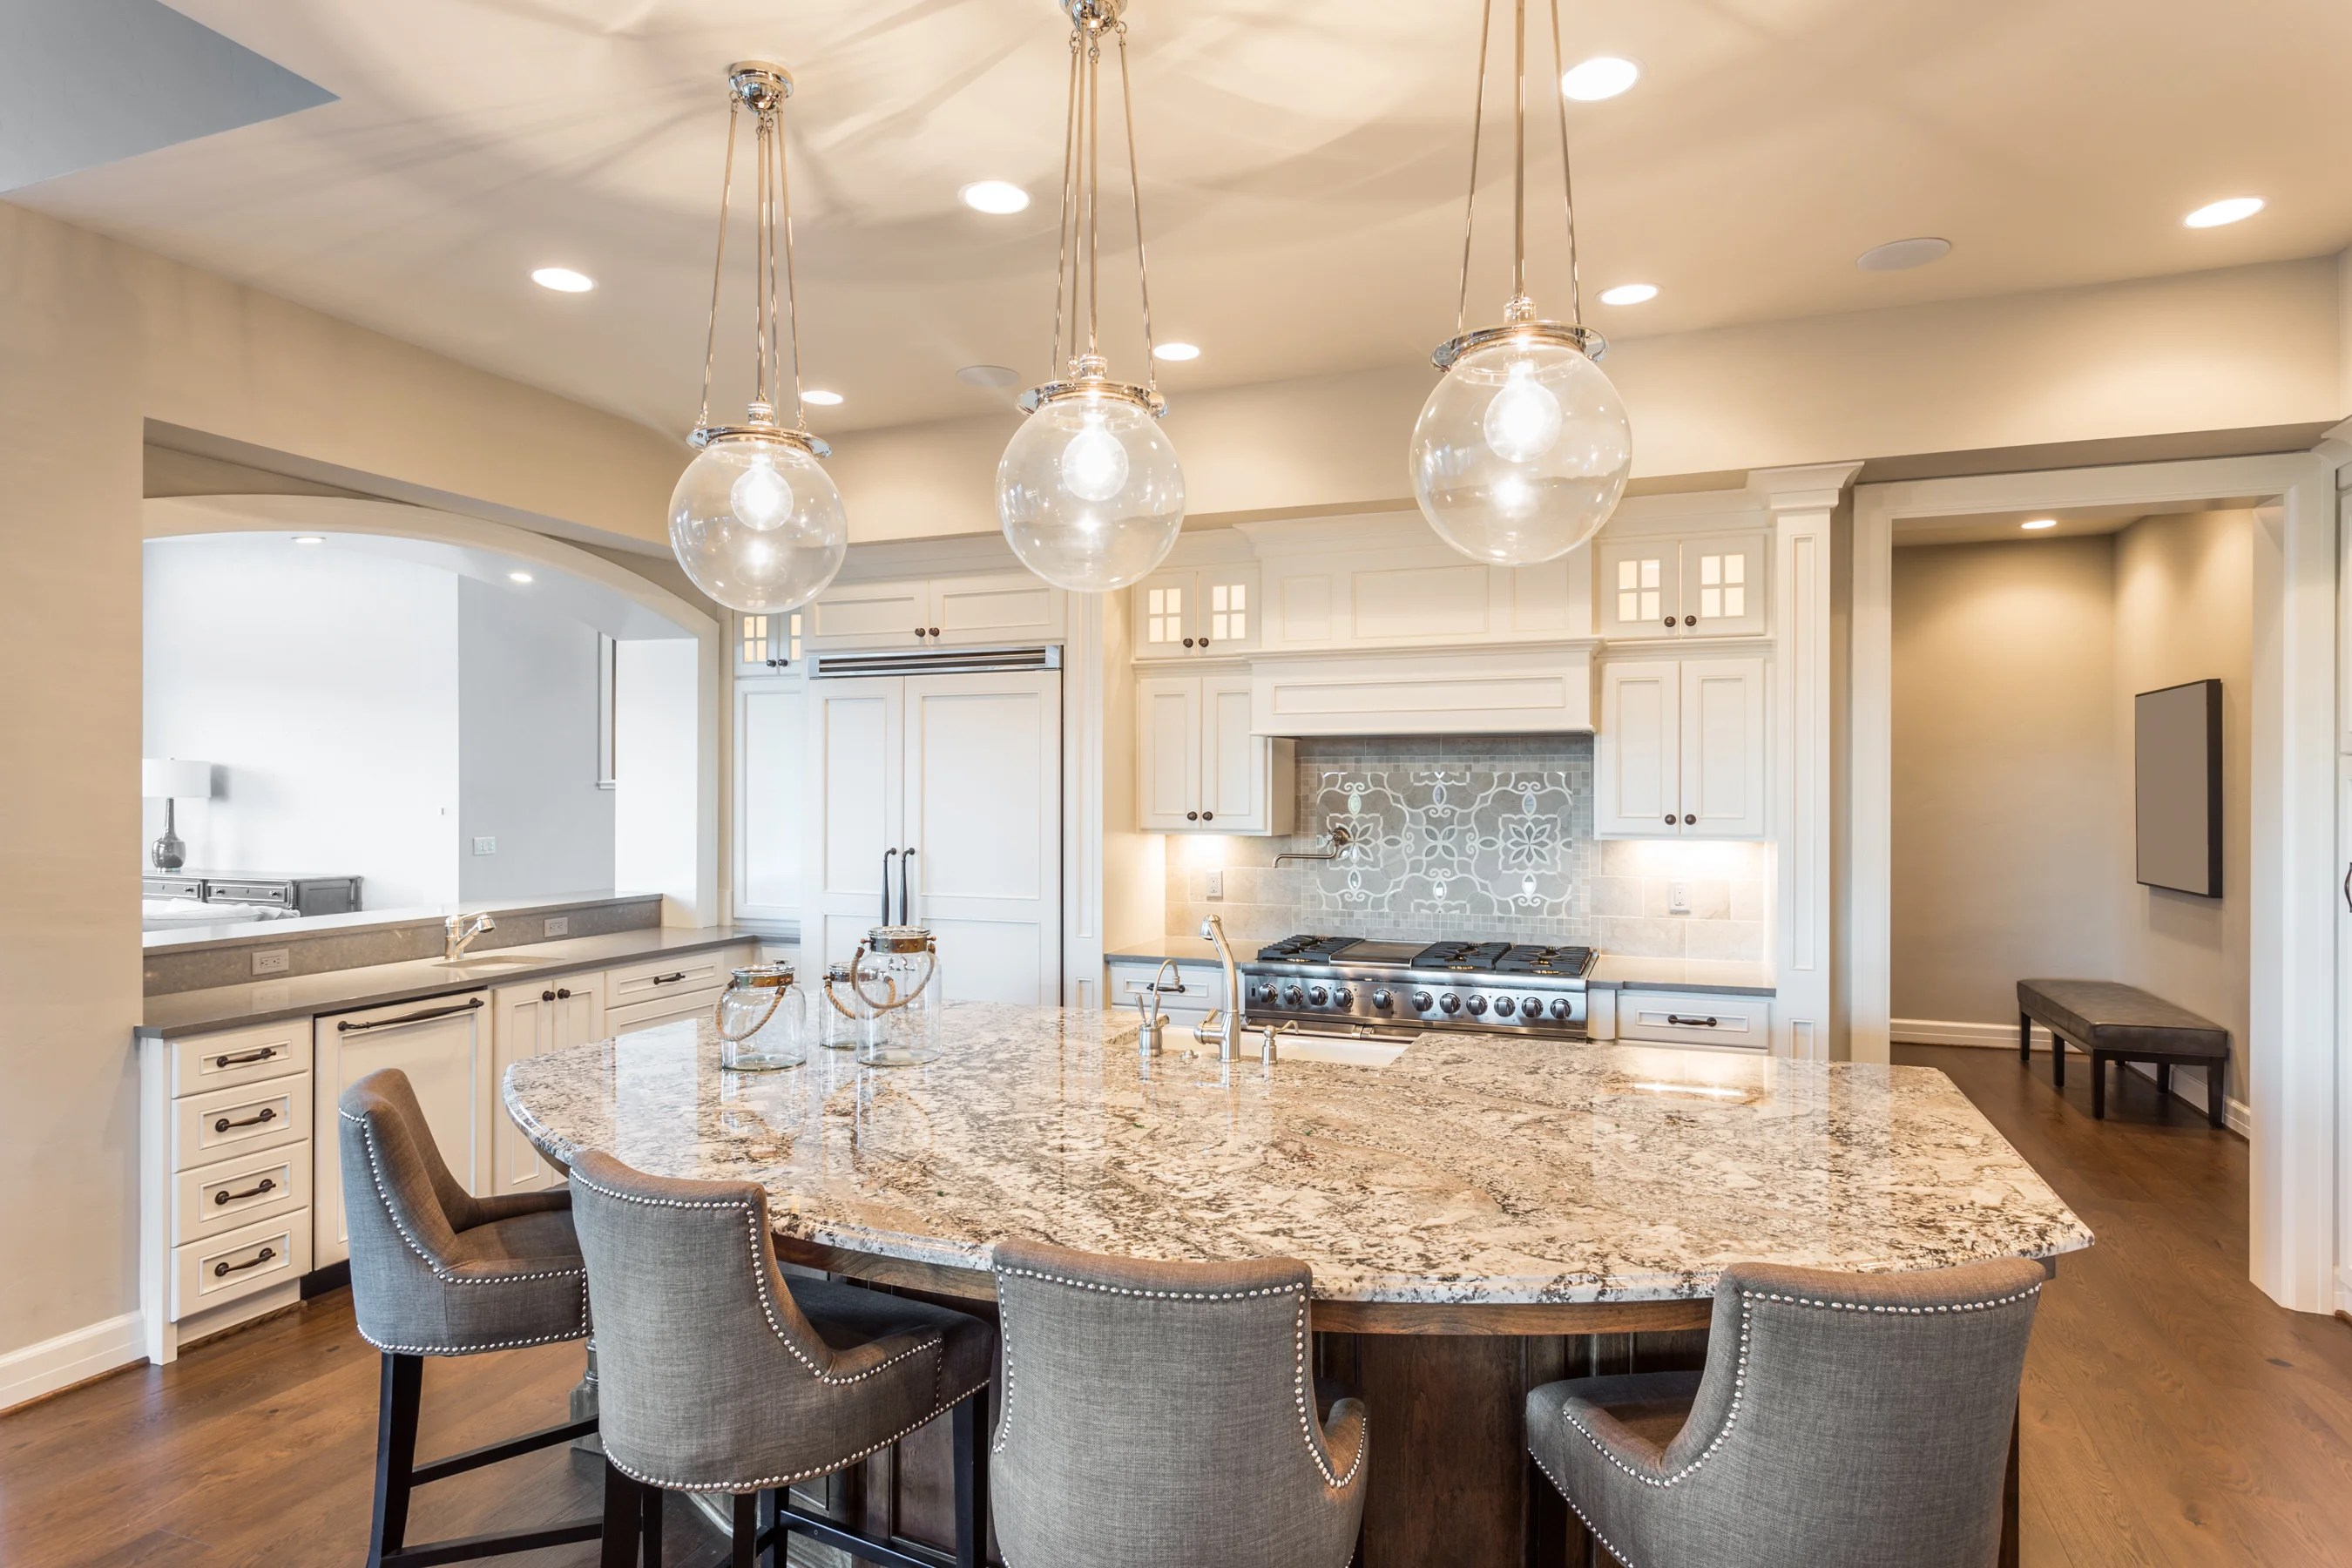 How Much Does A Kitchen Remodel Cost Millionacres